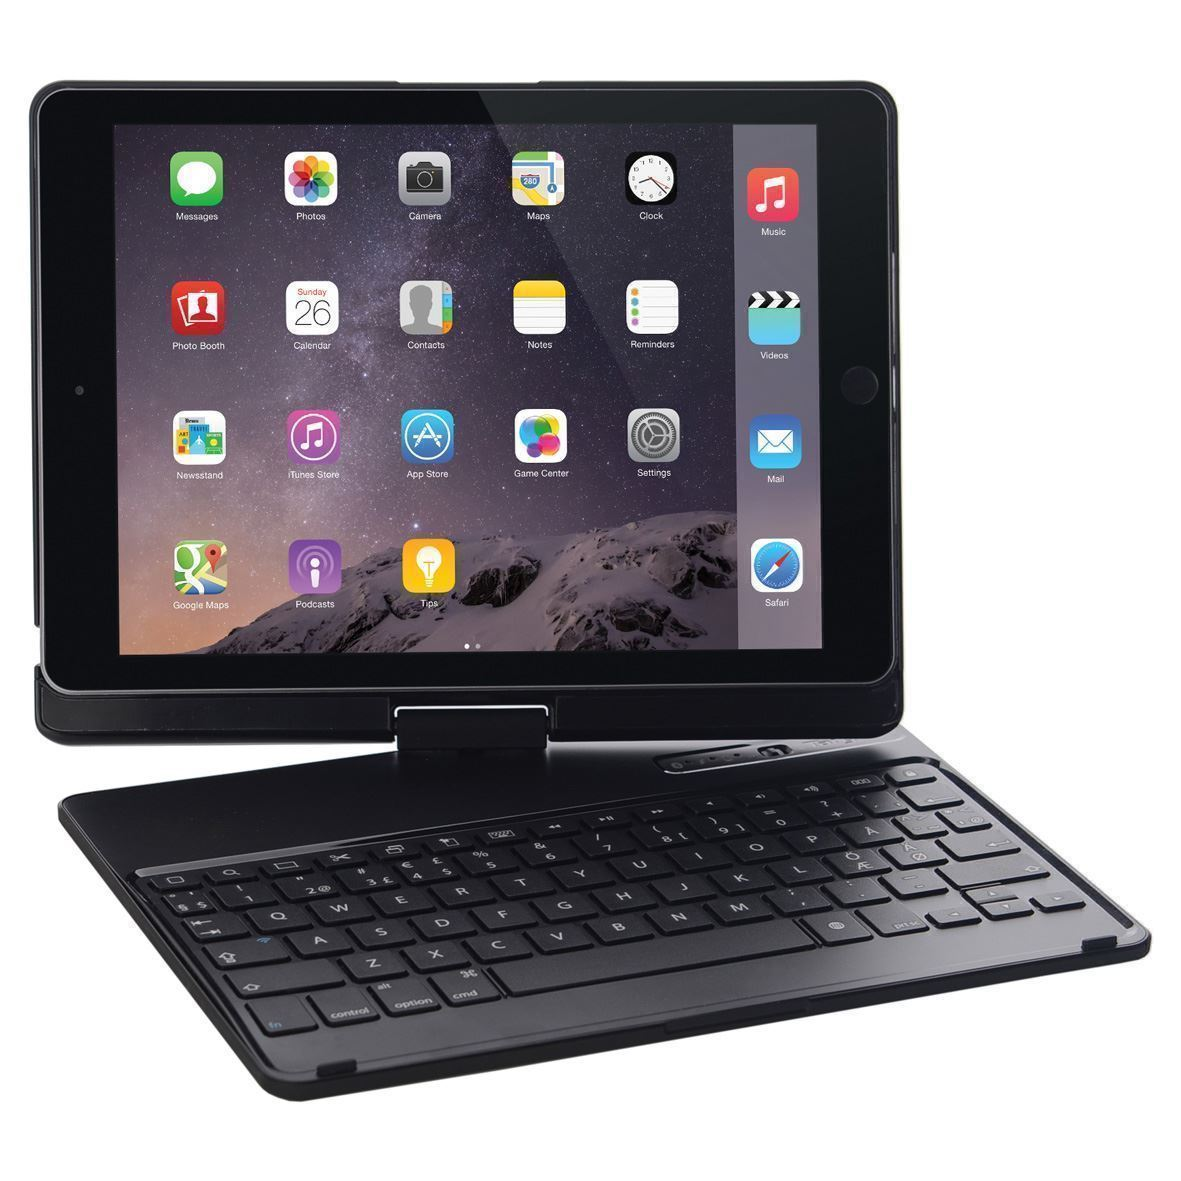 Keyboards - Wired and Wireless Keyboards for PCs and Tablet Devices ...